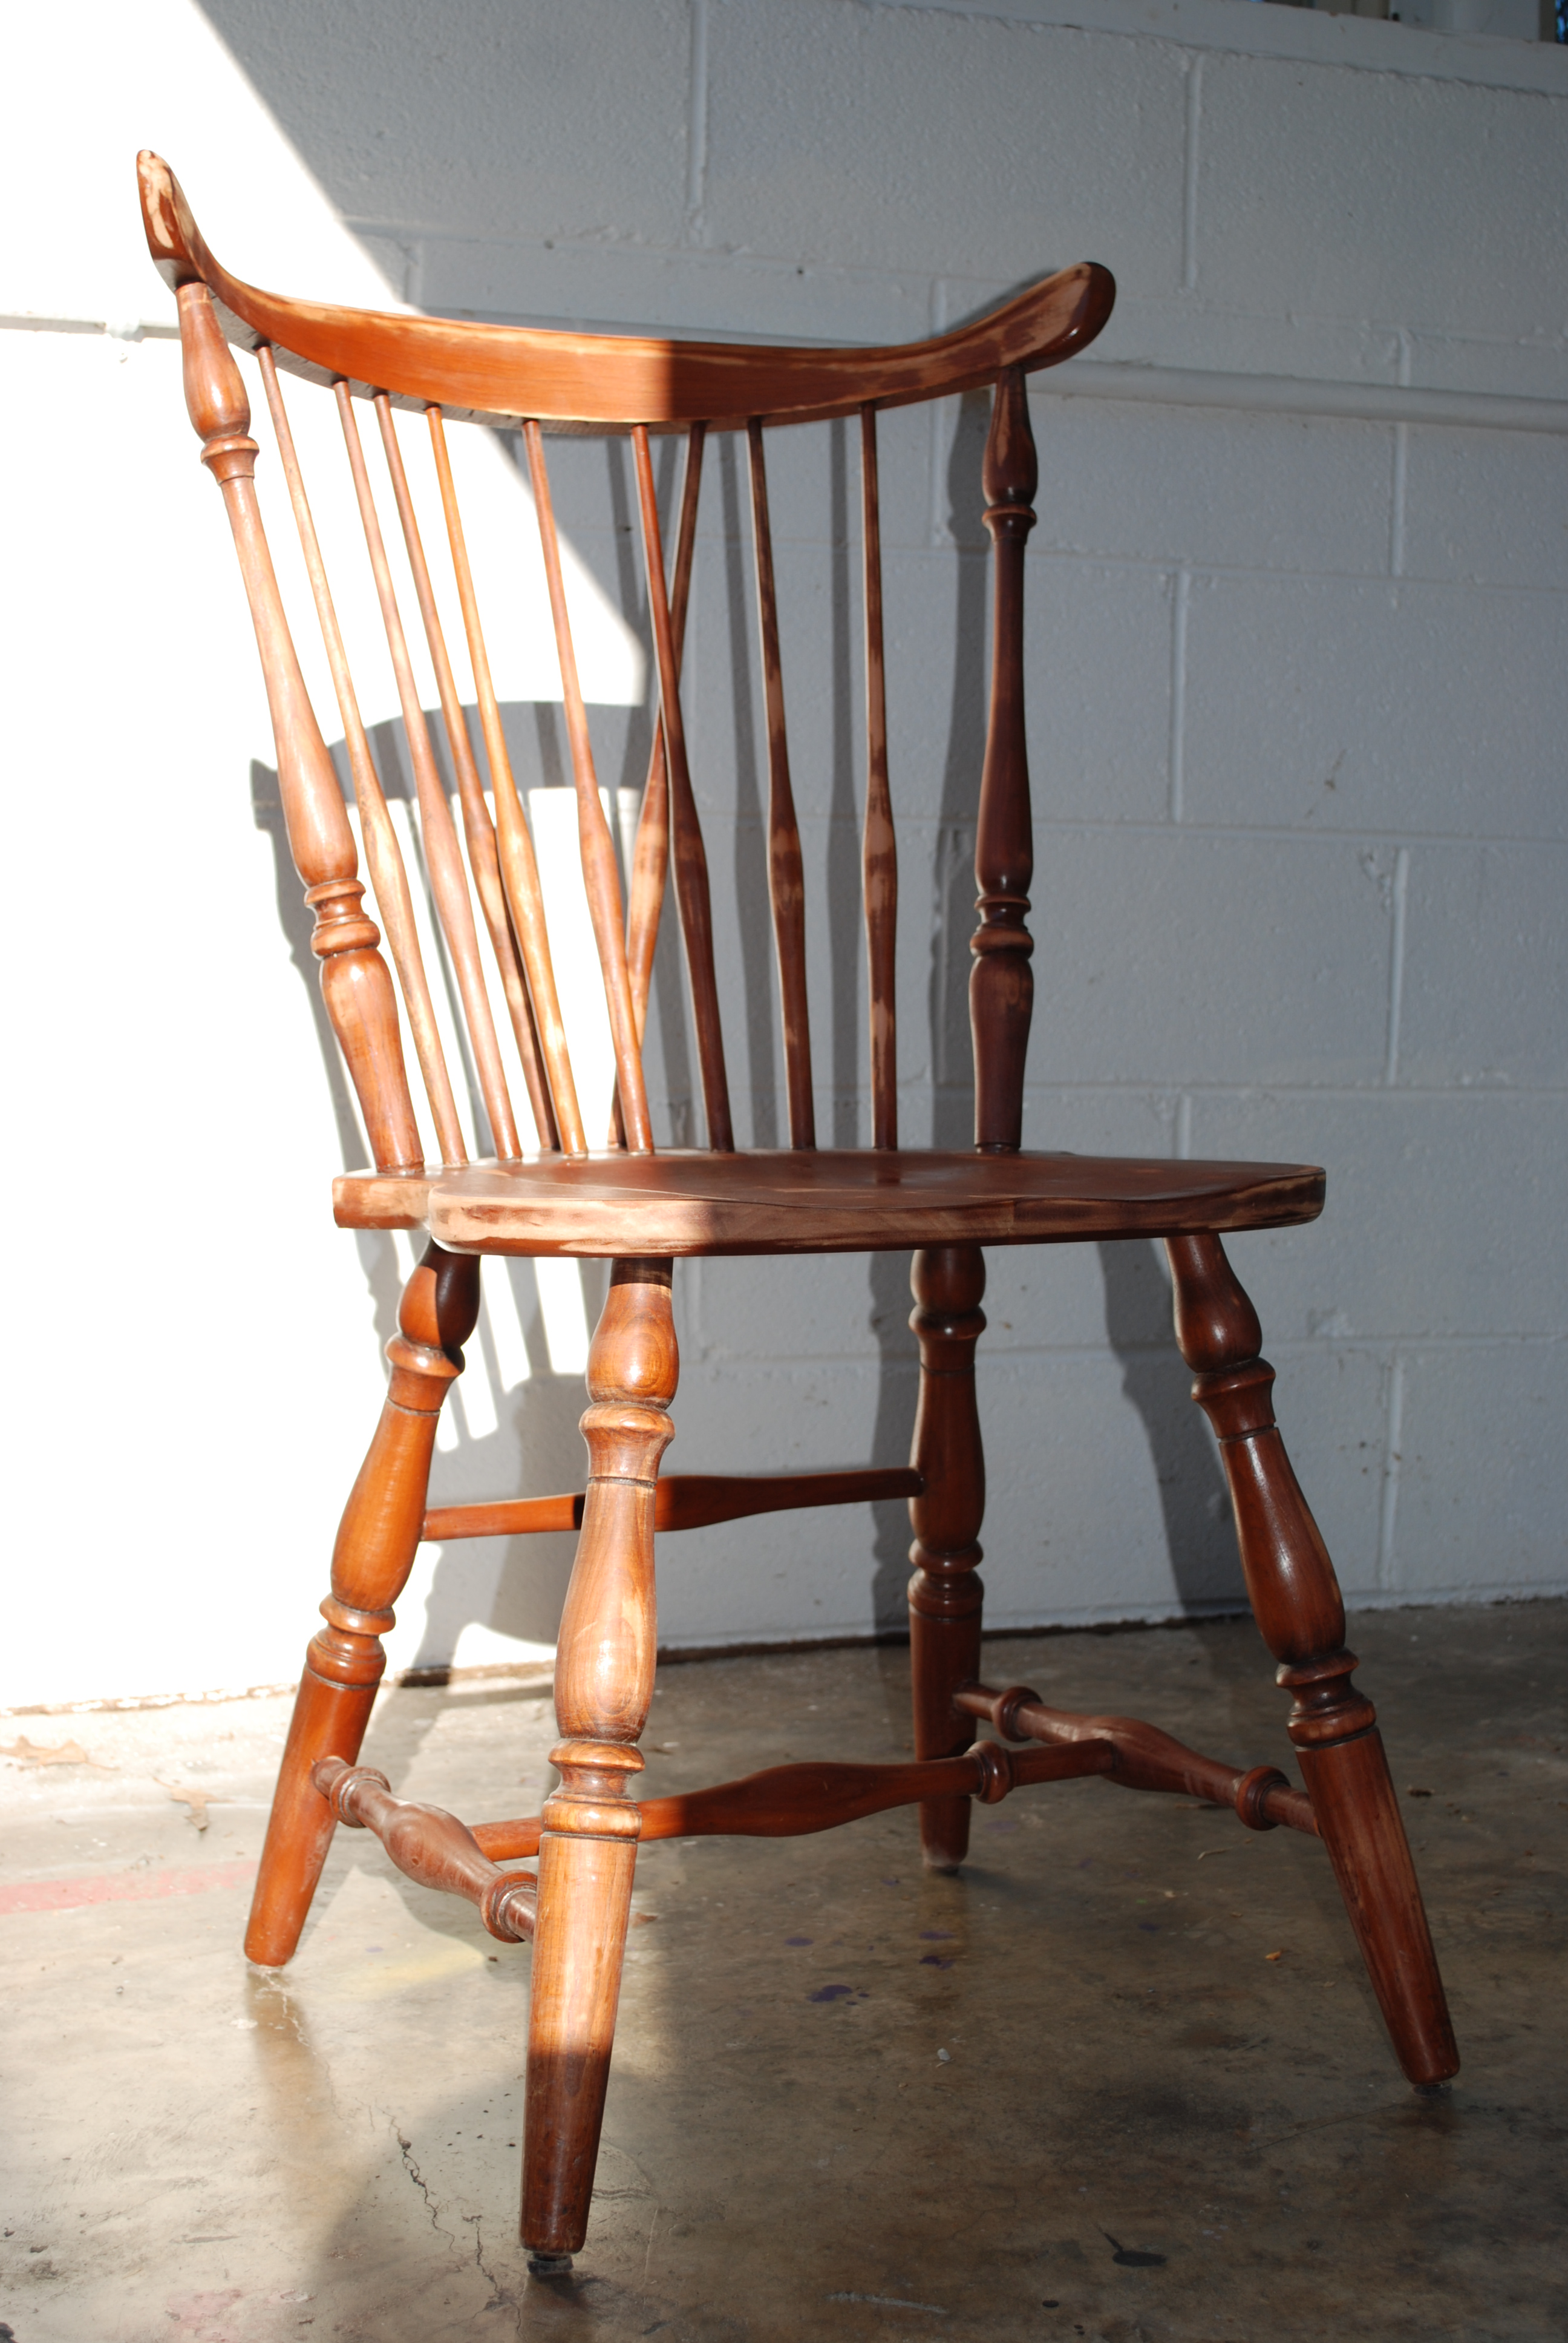 diy painted windsor chairs simply bows and chair covers newcastle how to paint black delight then we the with milk used because historically craftsmen it on also s durable a